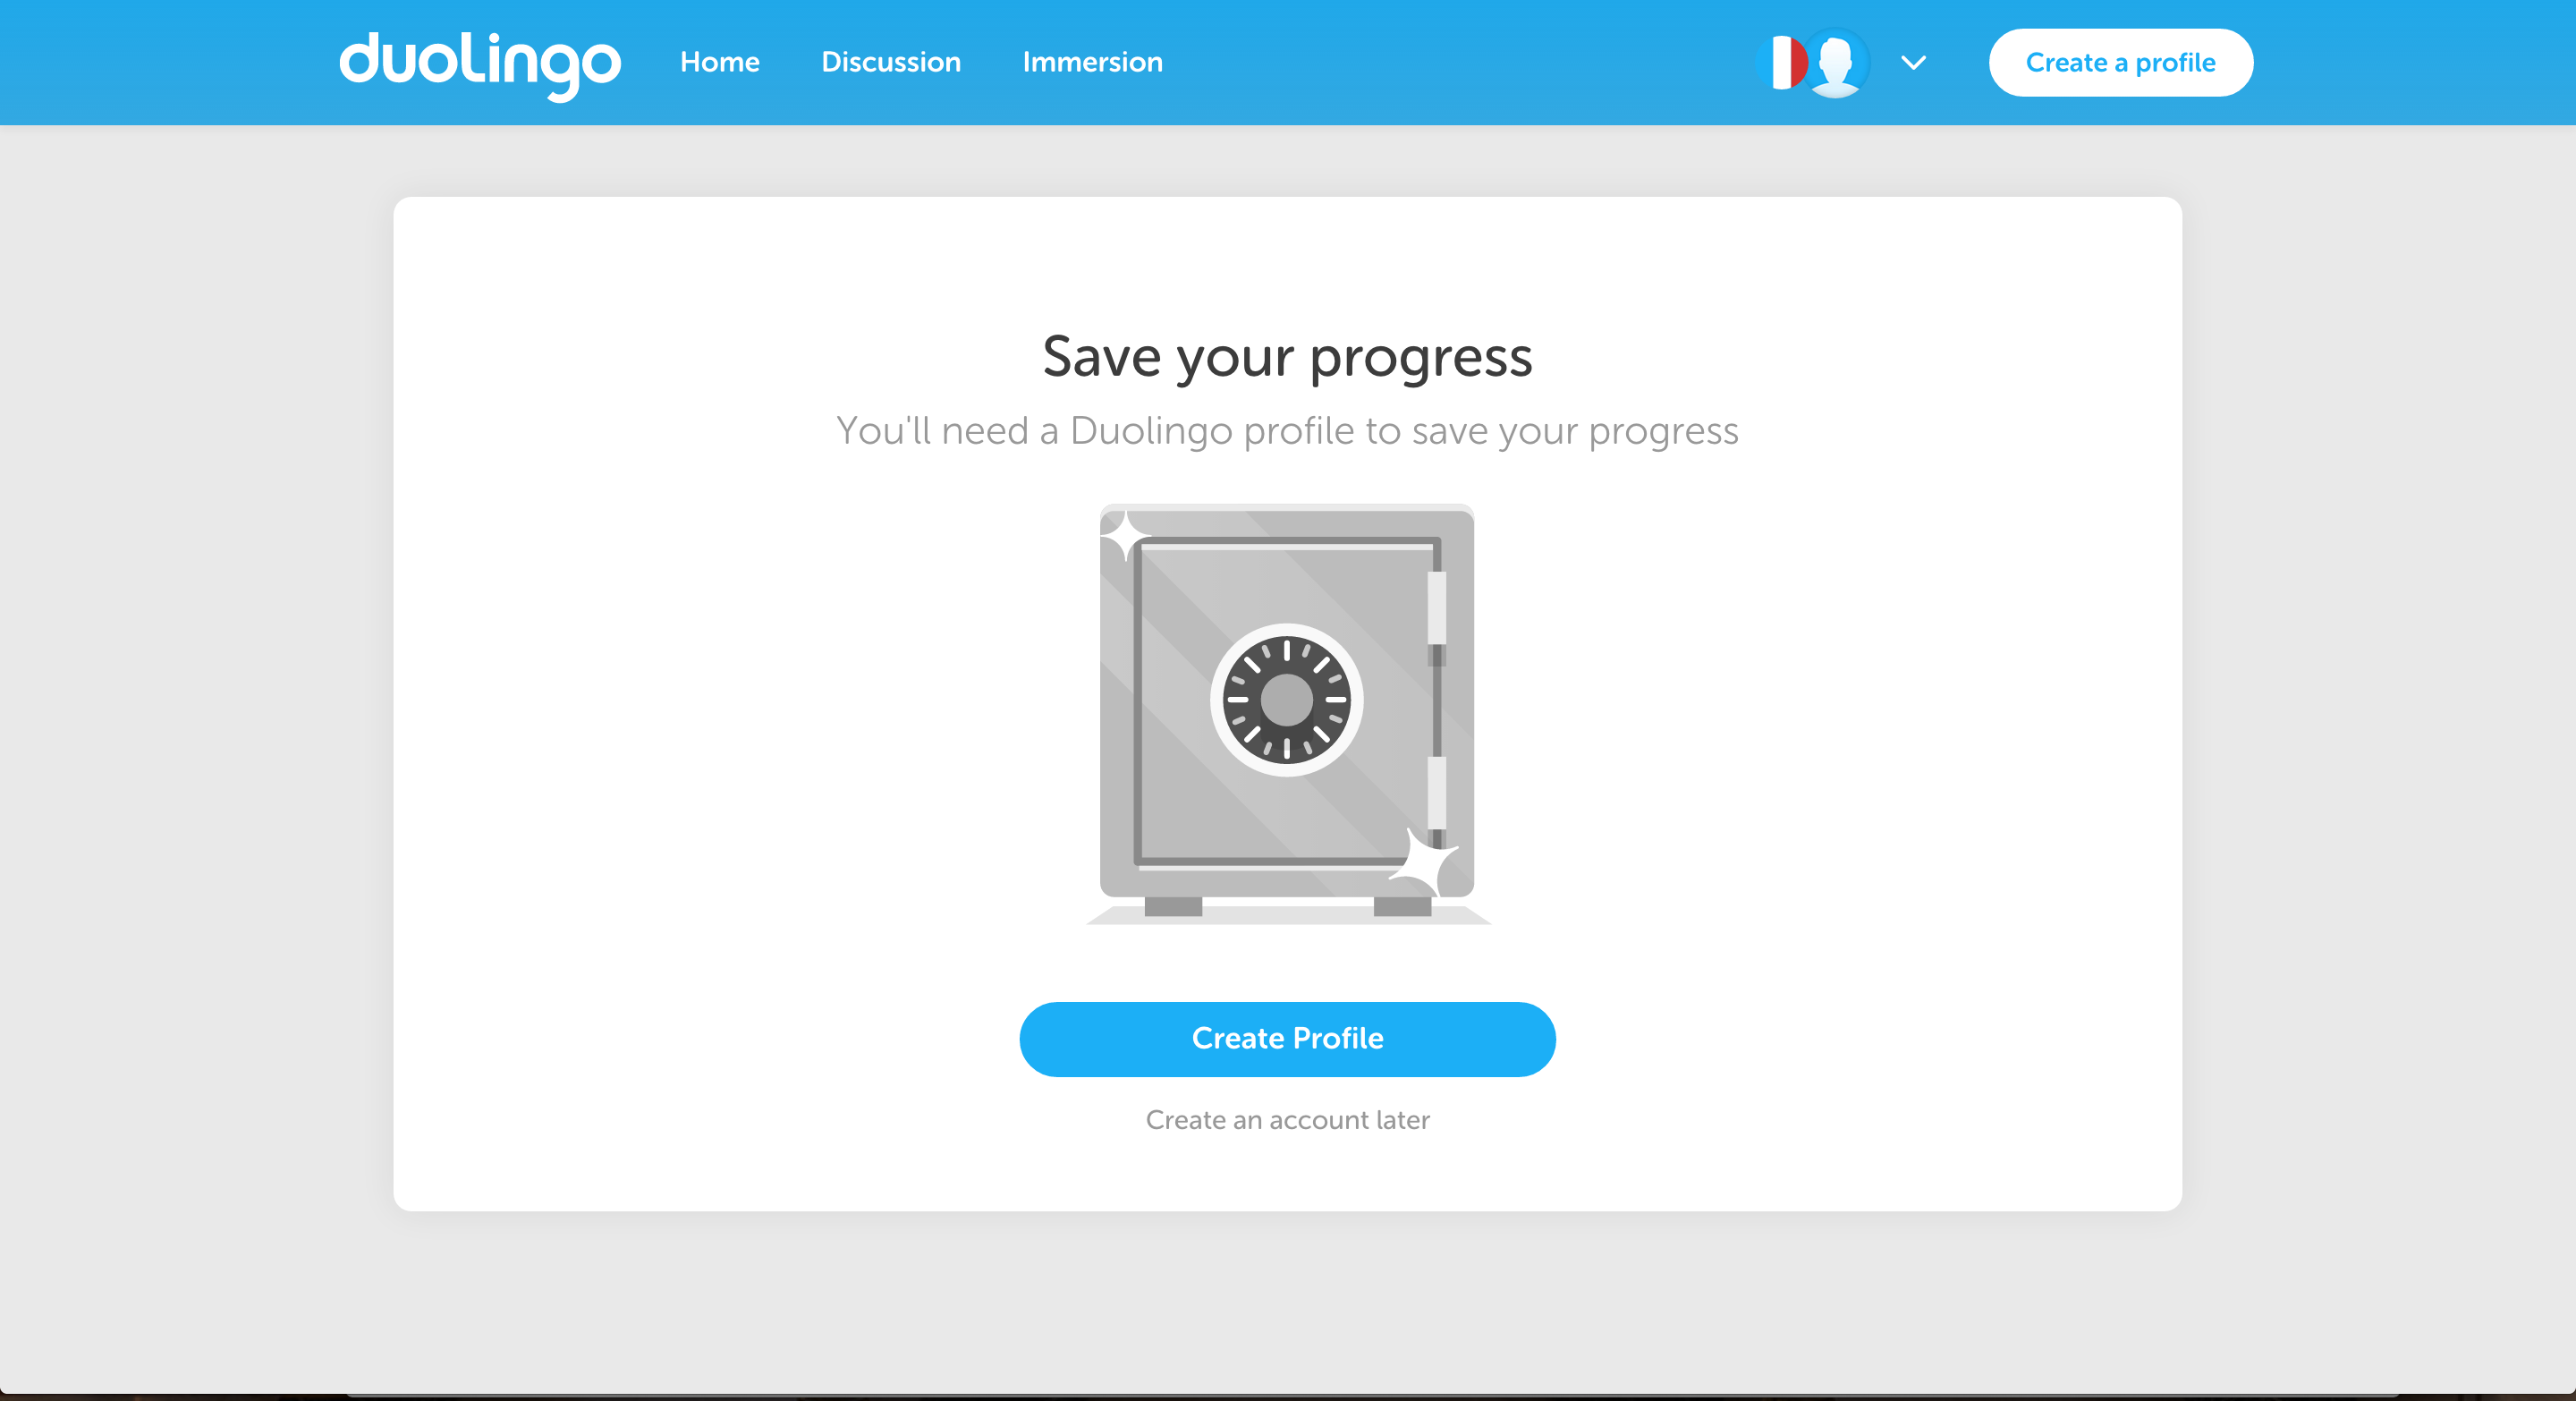 Duolingo user onboarding via deferred account creation to save progress